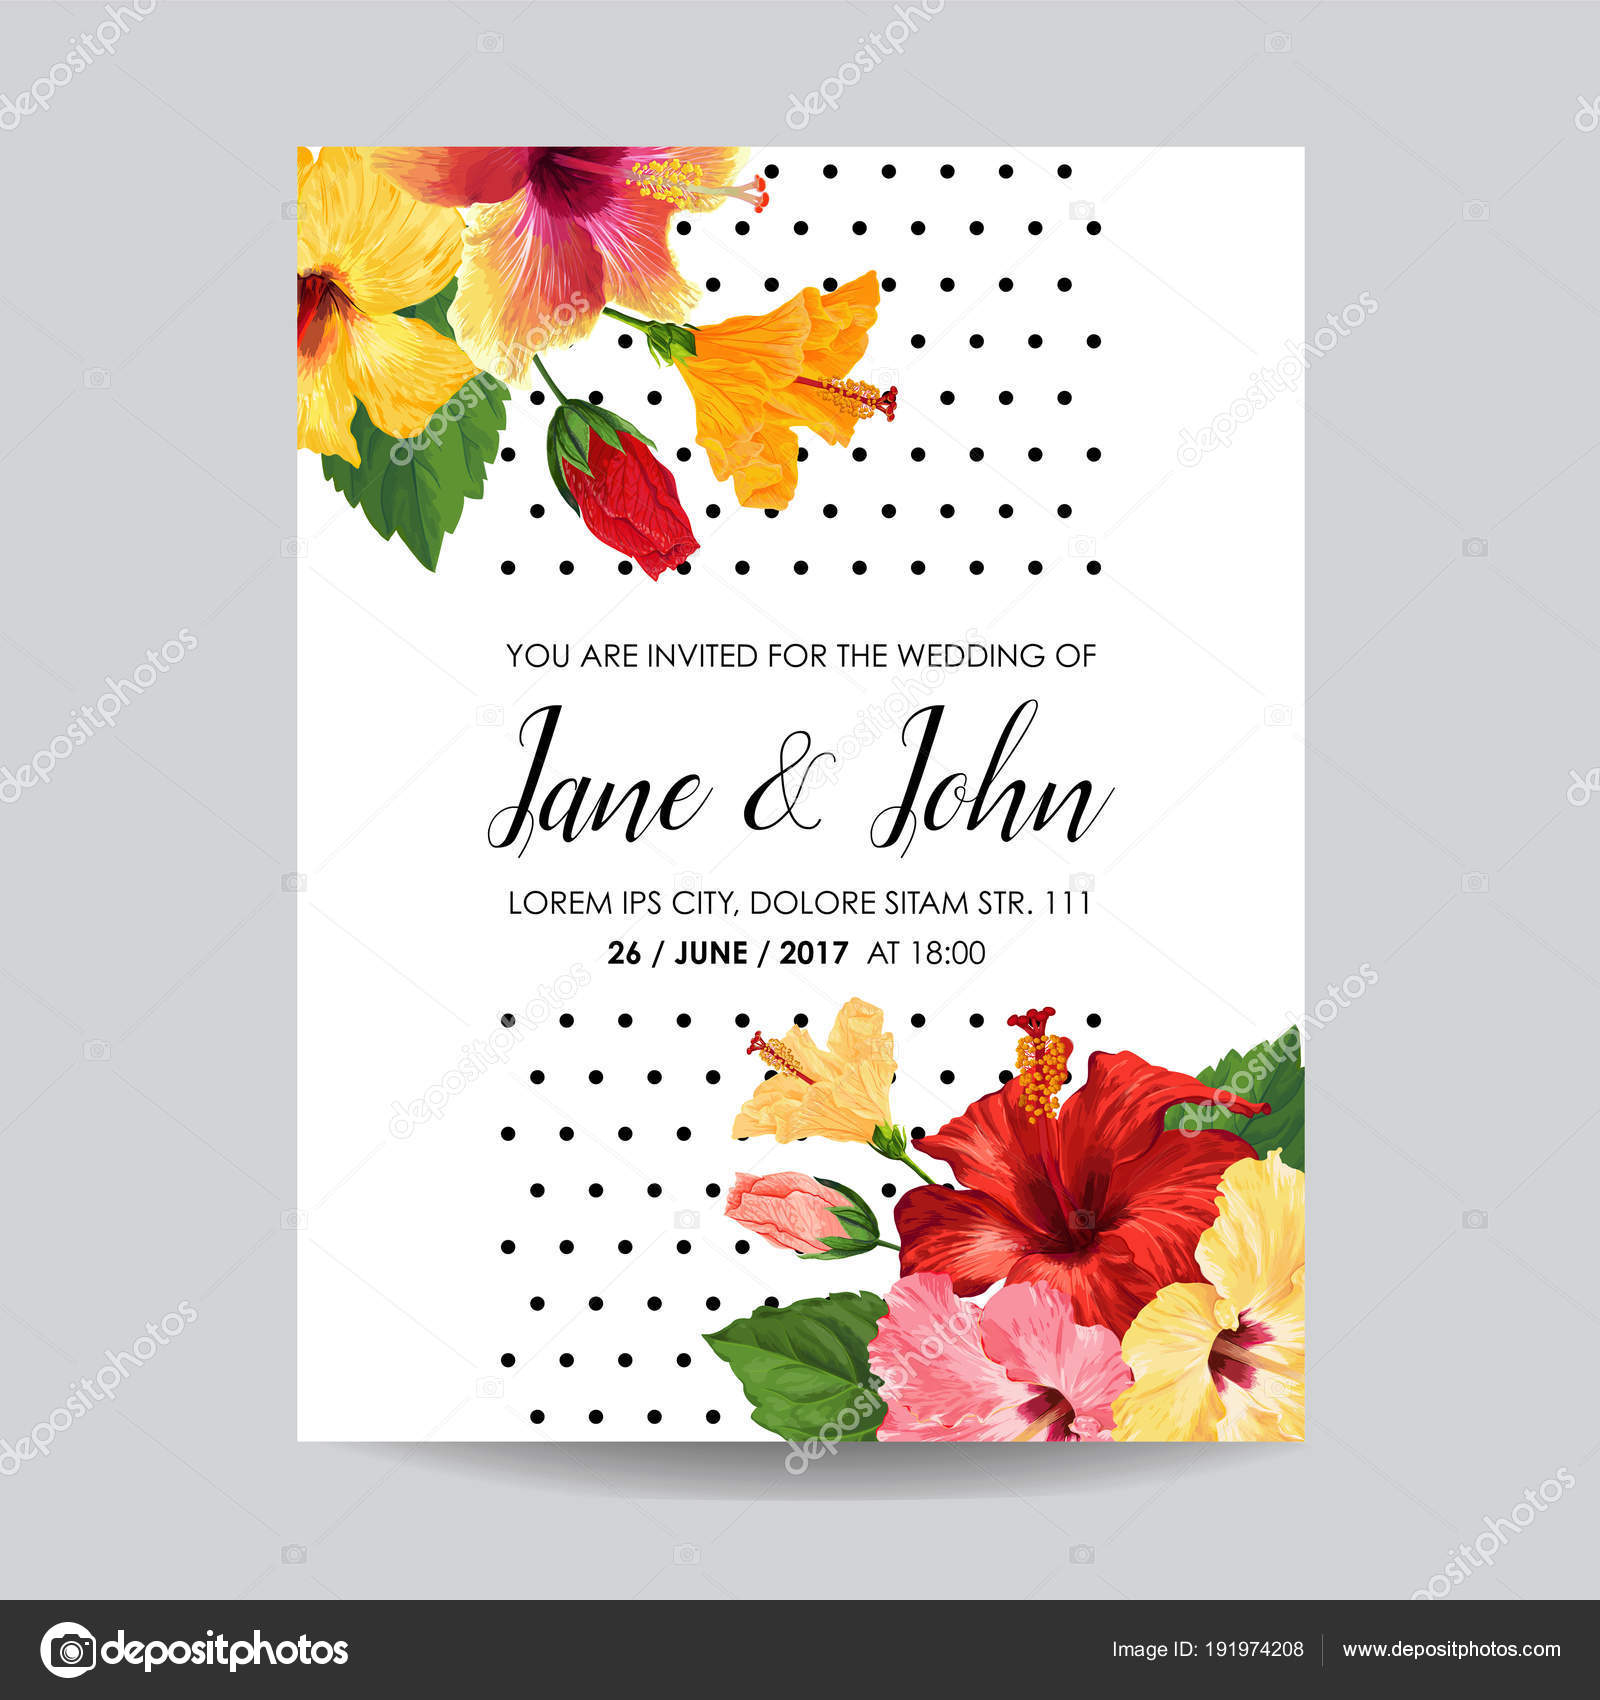 Wedding Invitation Template with Red Hibiscus Flowers. Save the Date ...